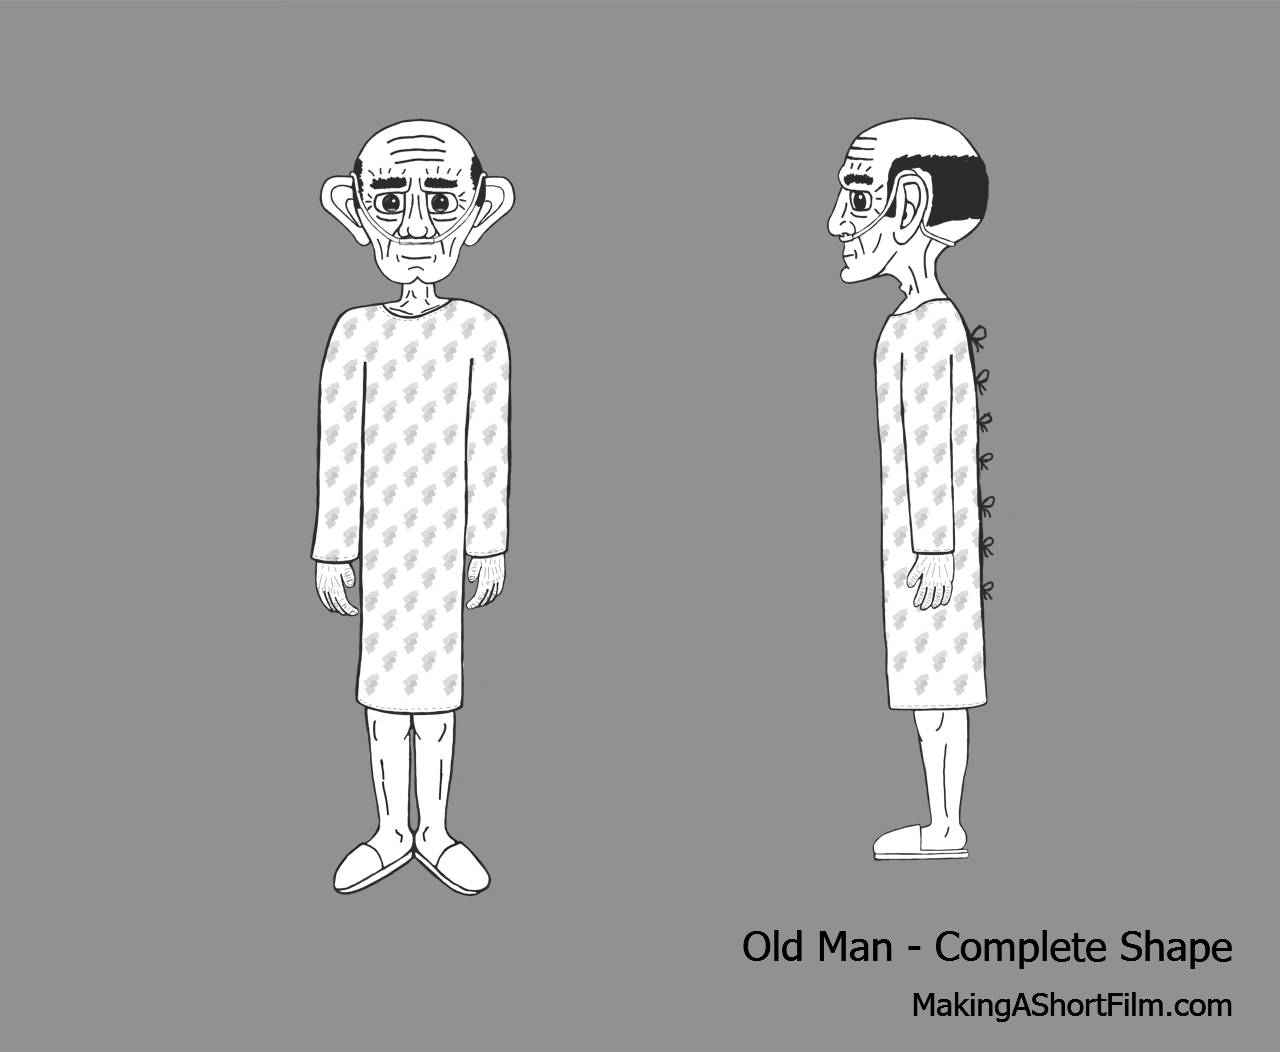 The Complete Shape of the Old Man